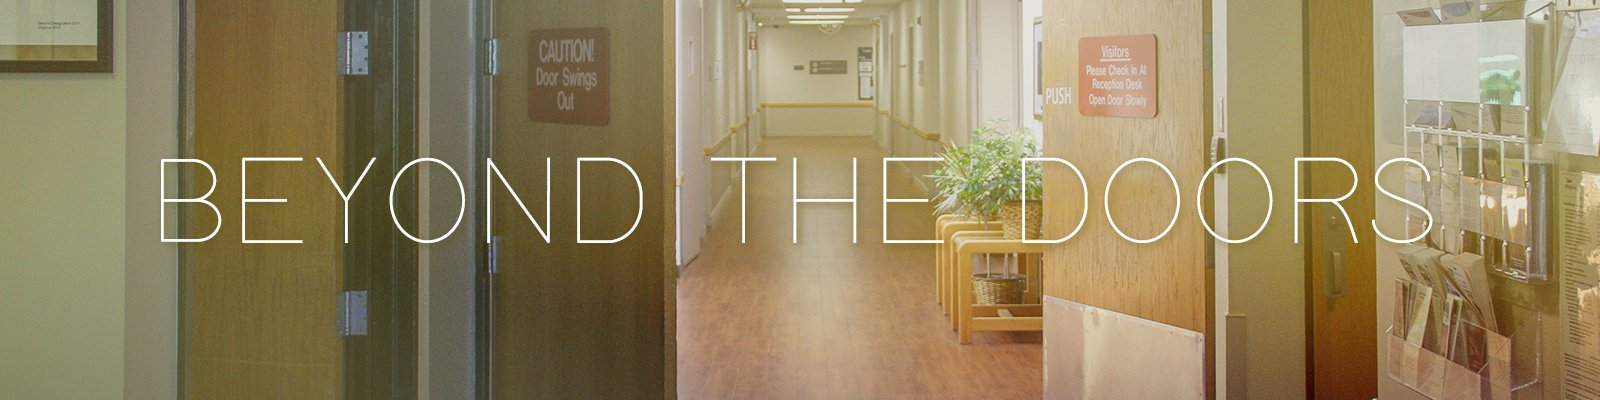 Beyond the Doors - Billings Clinic Psychiatric Services